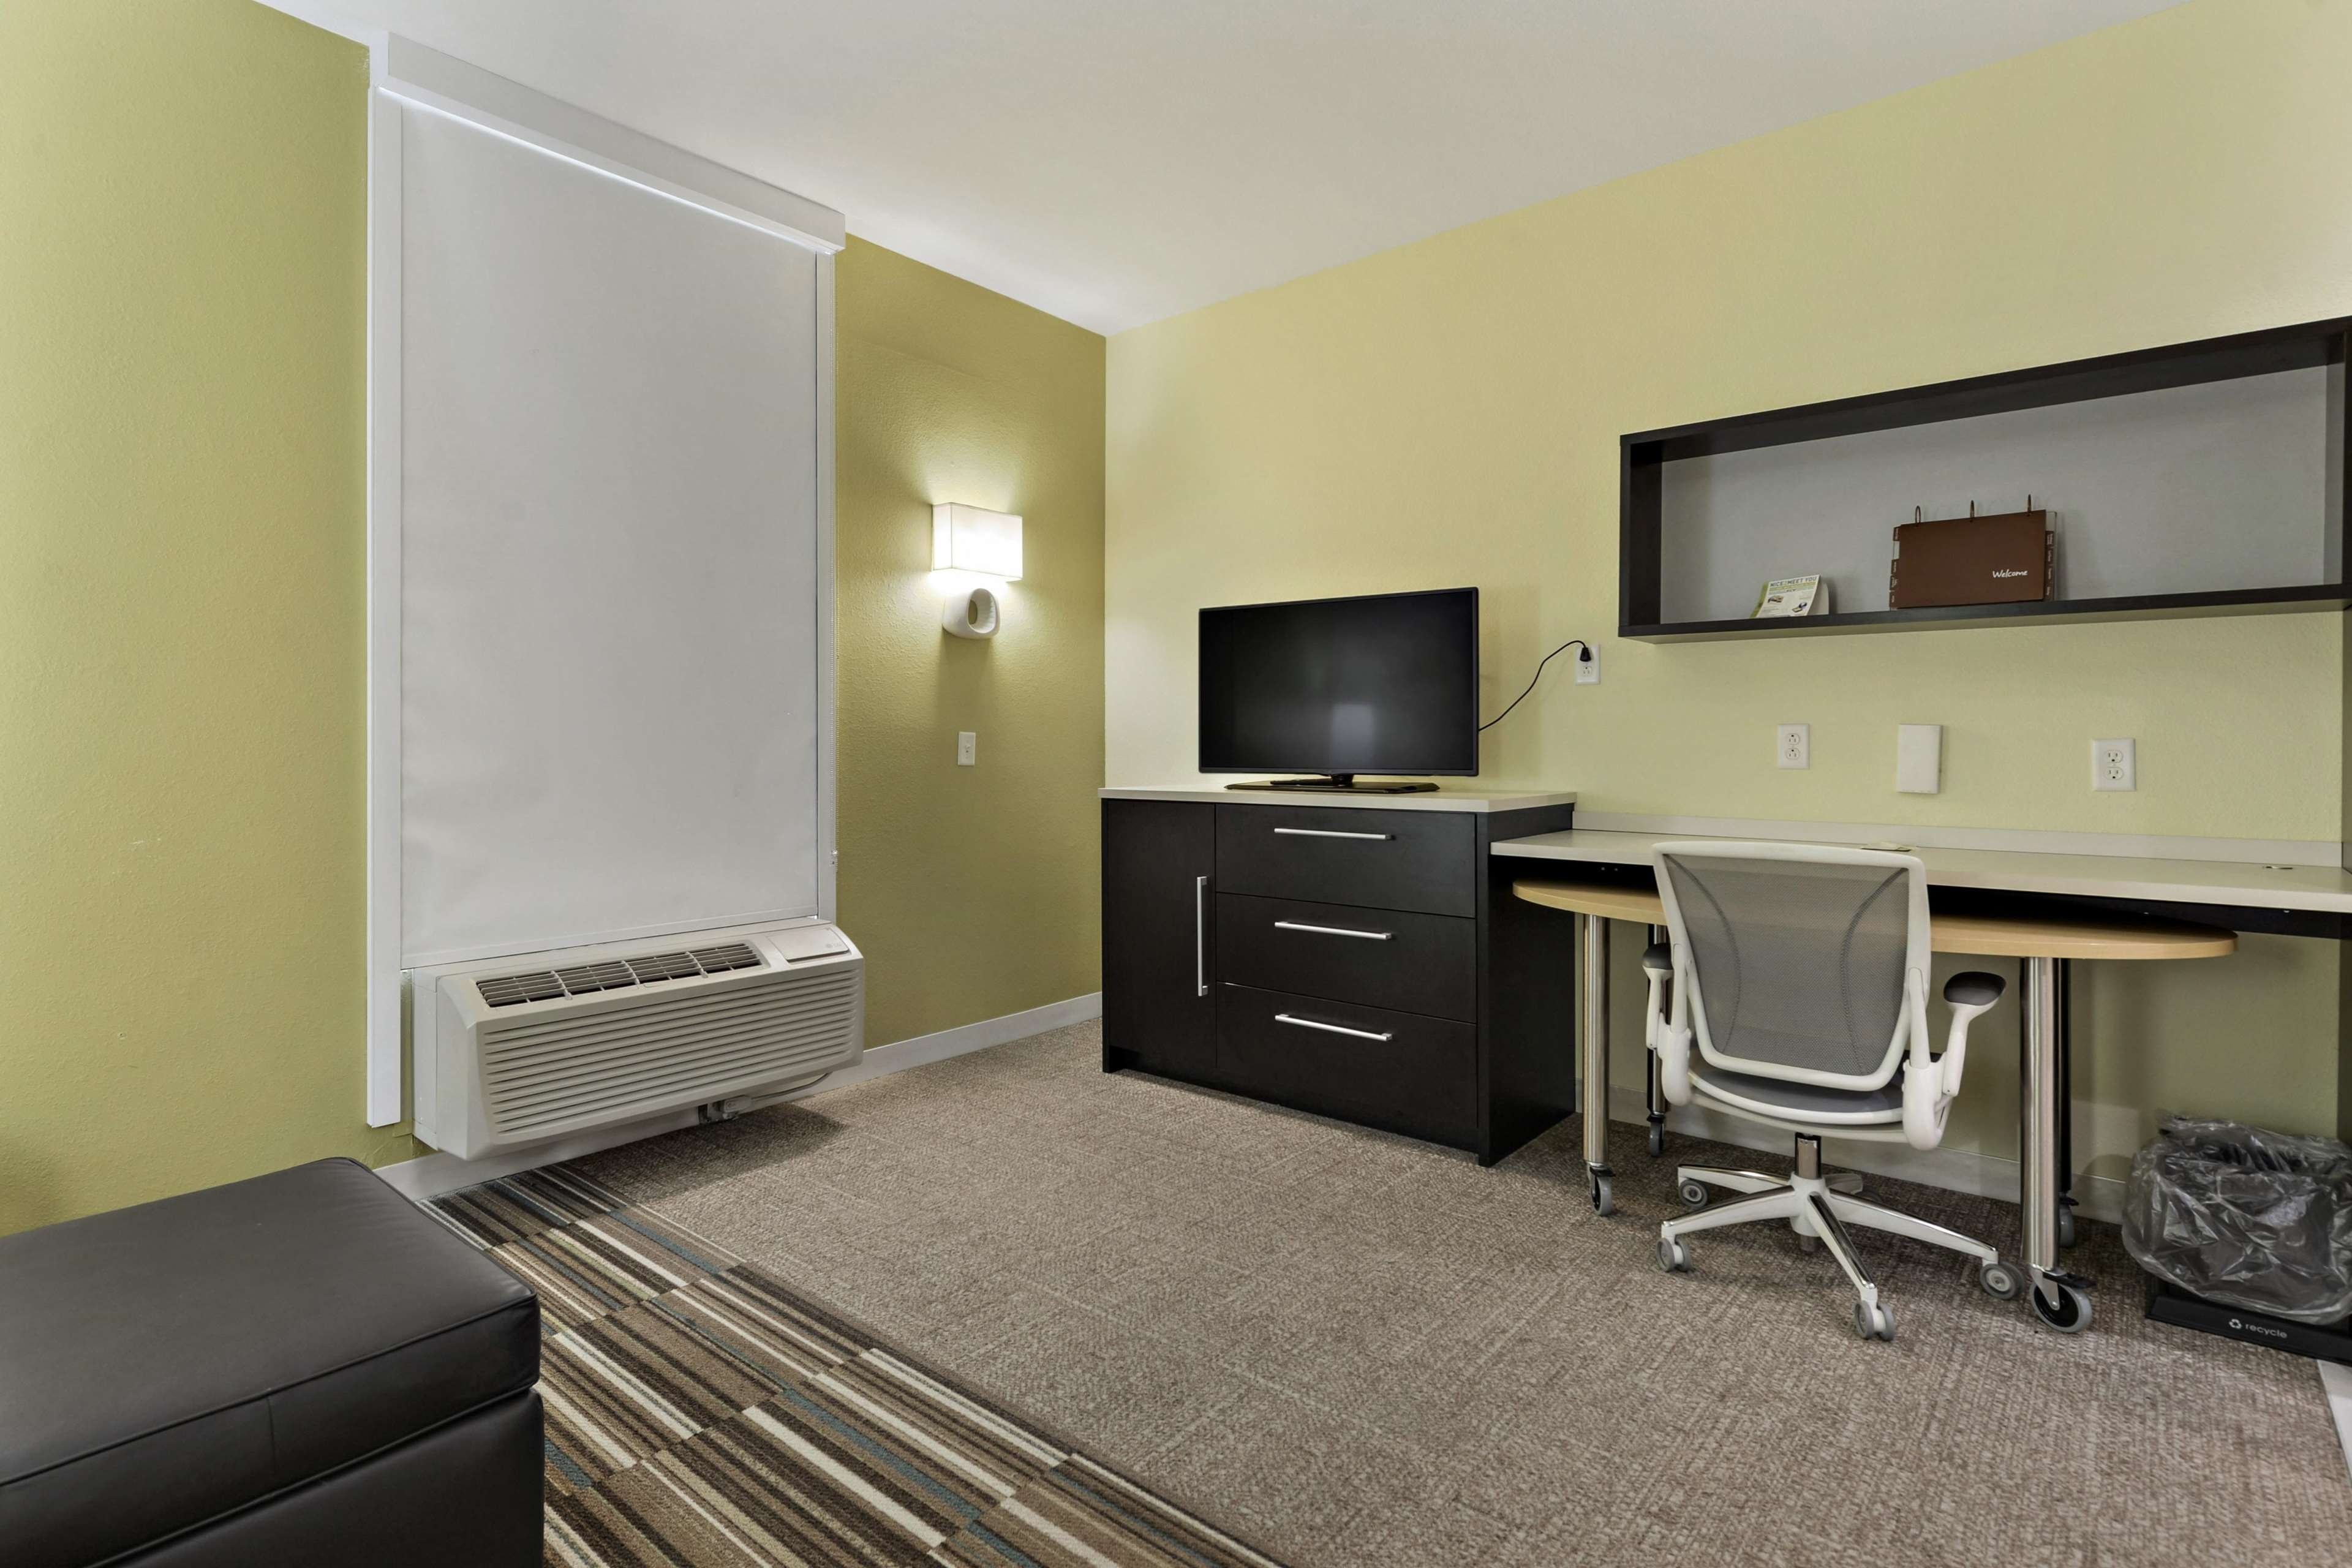 Home2 Suites by Hilton Gulfport I-10 image 22